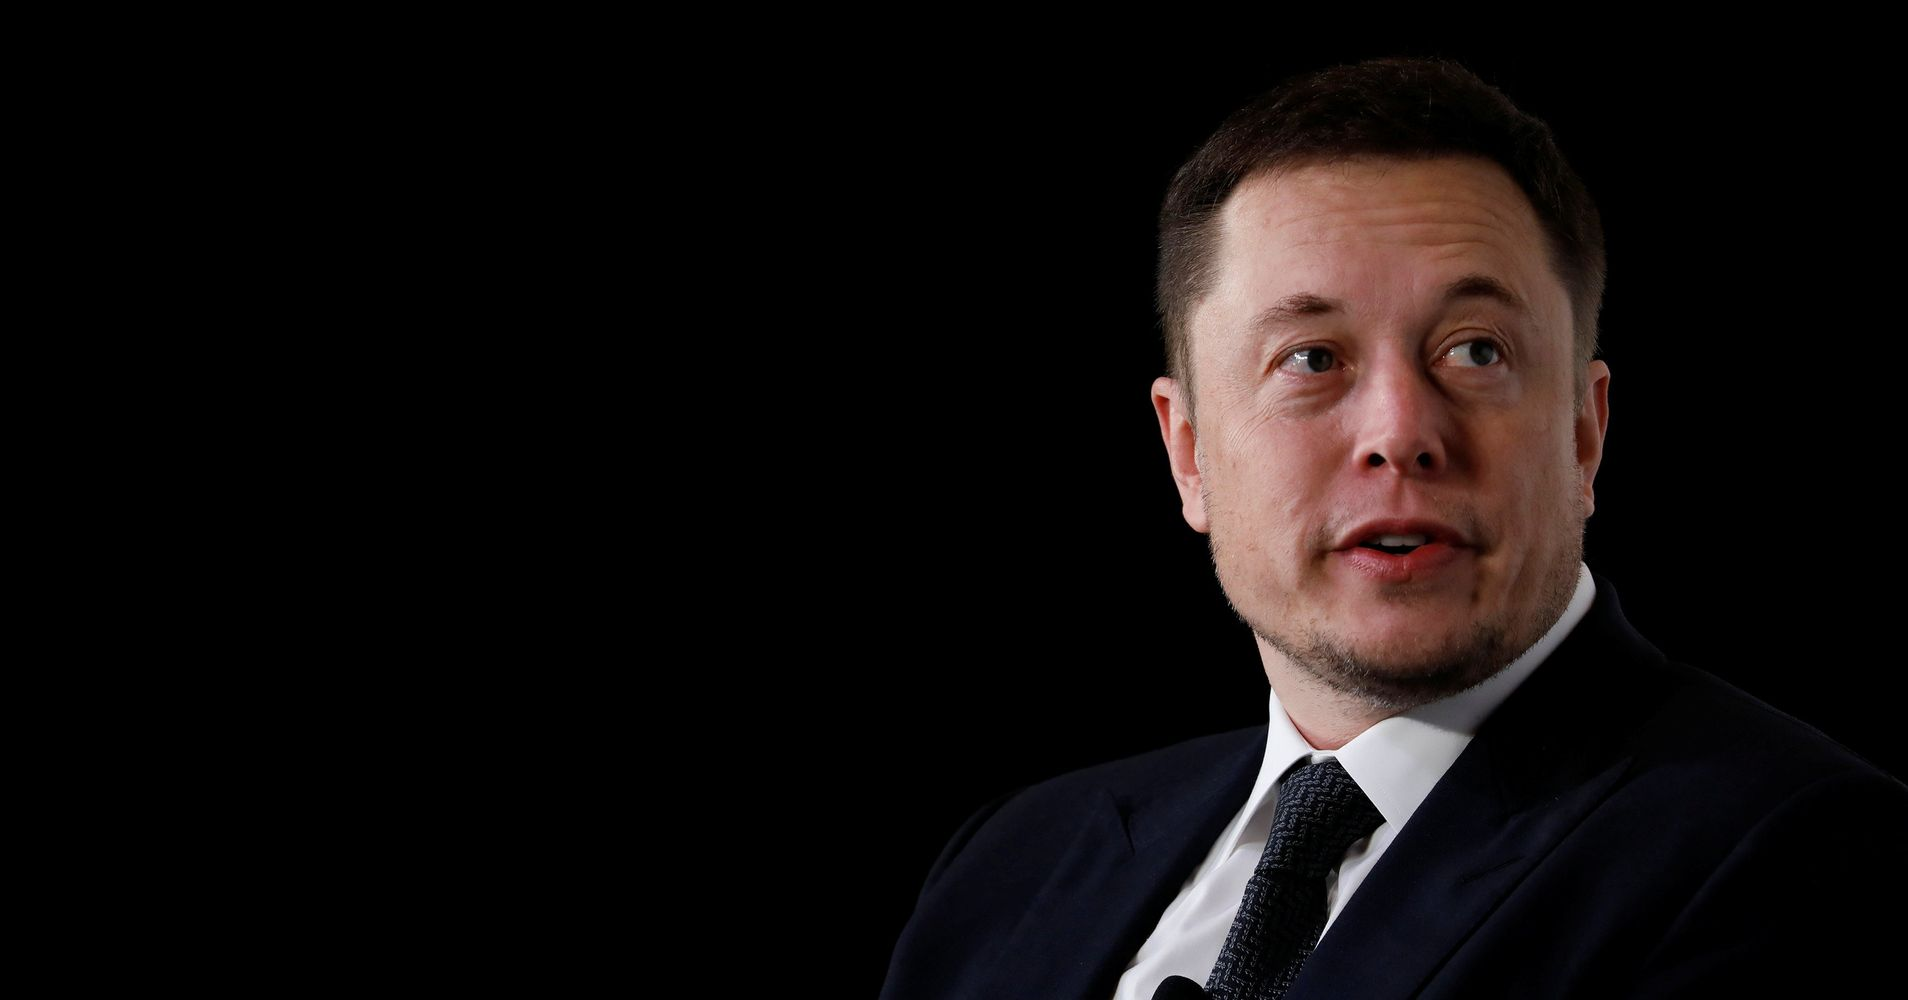 Reporter Writes Glowing Article About Elon Musk But Leaves Out Key Details